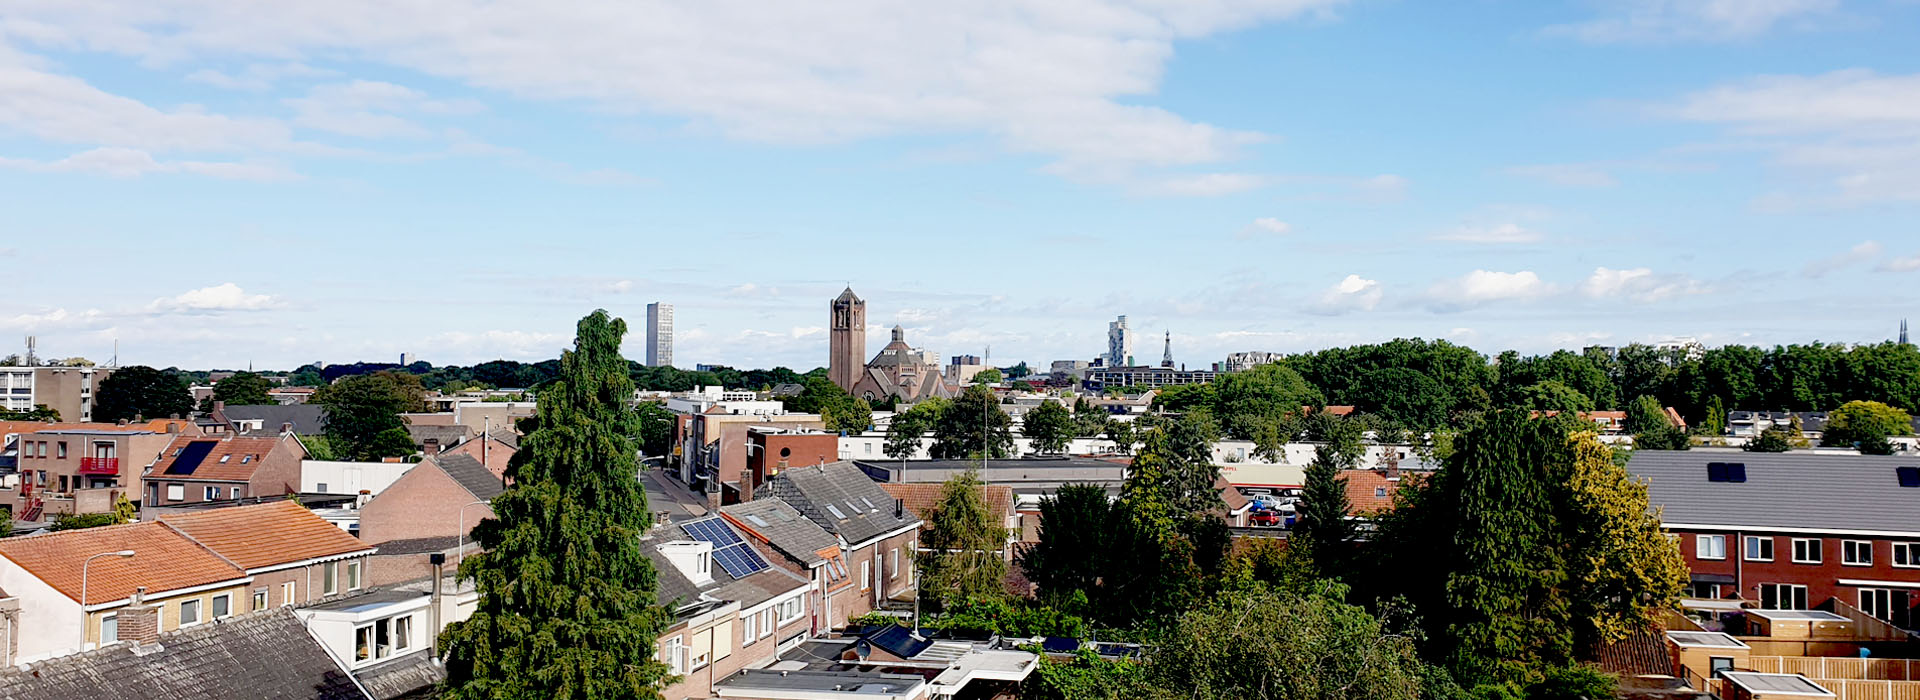 rooftop view of Tilburg